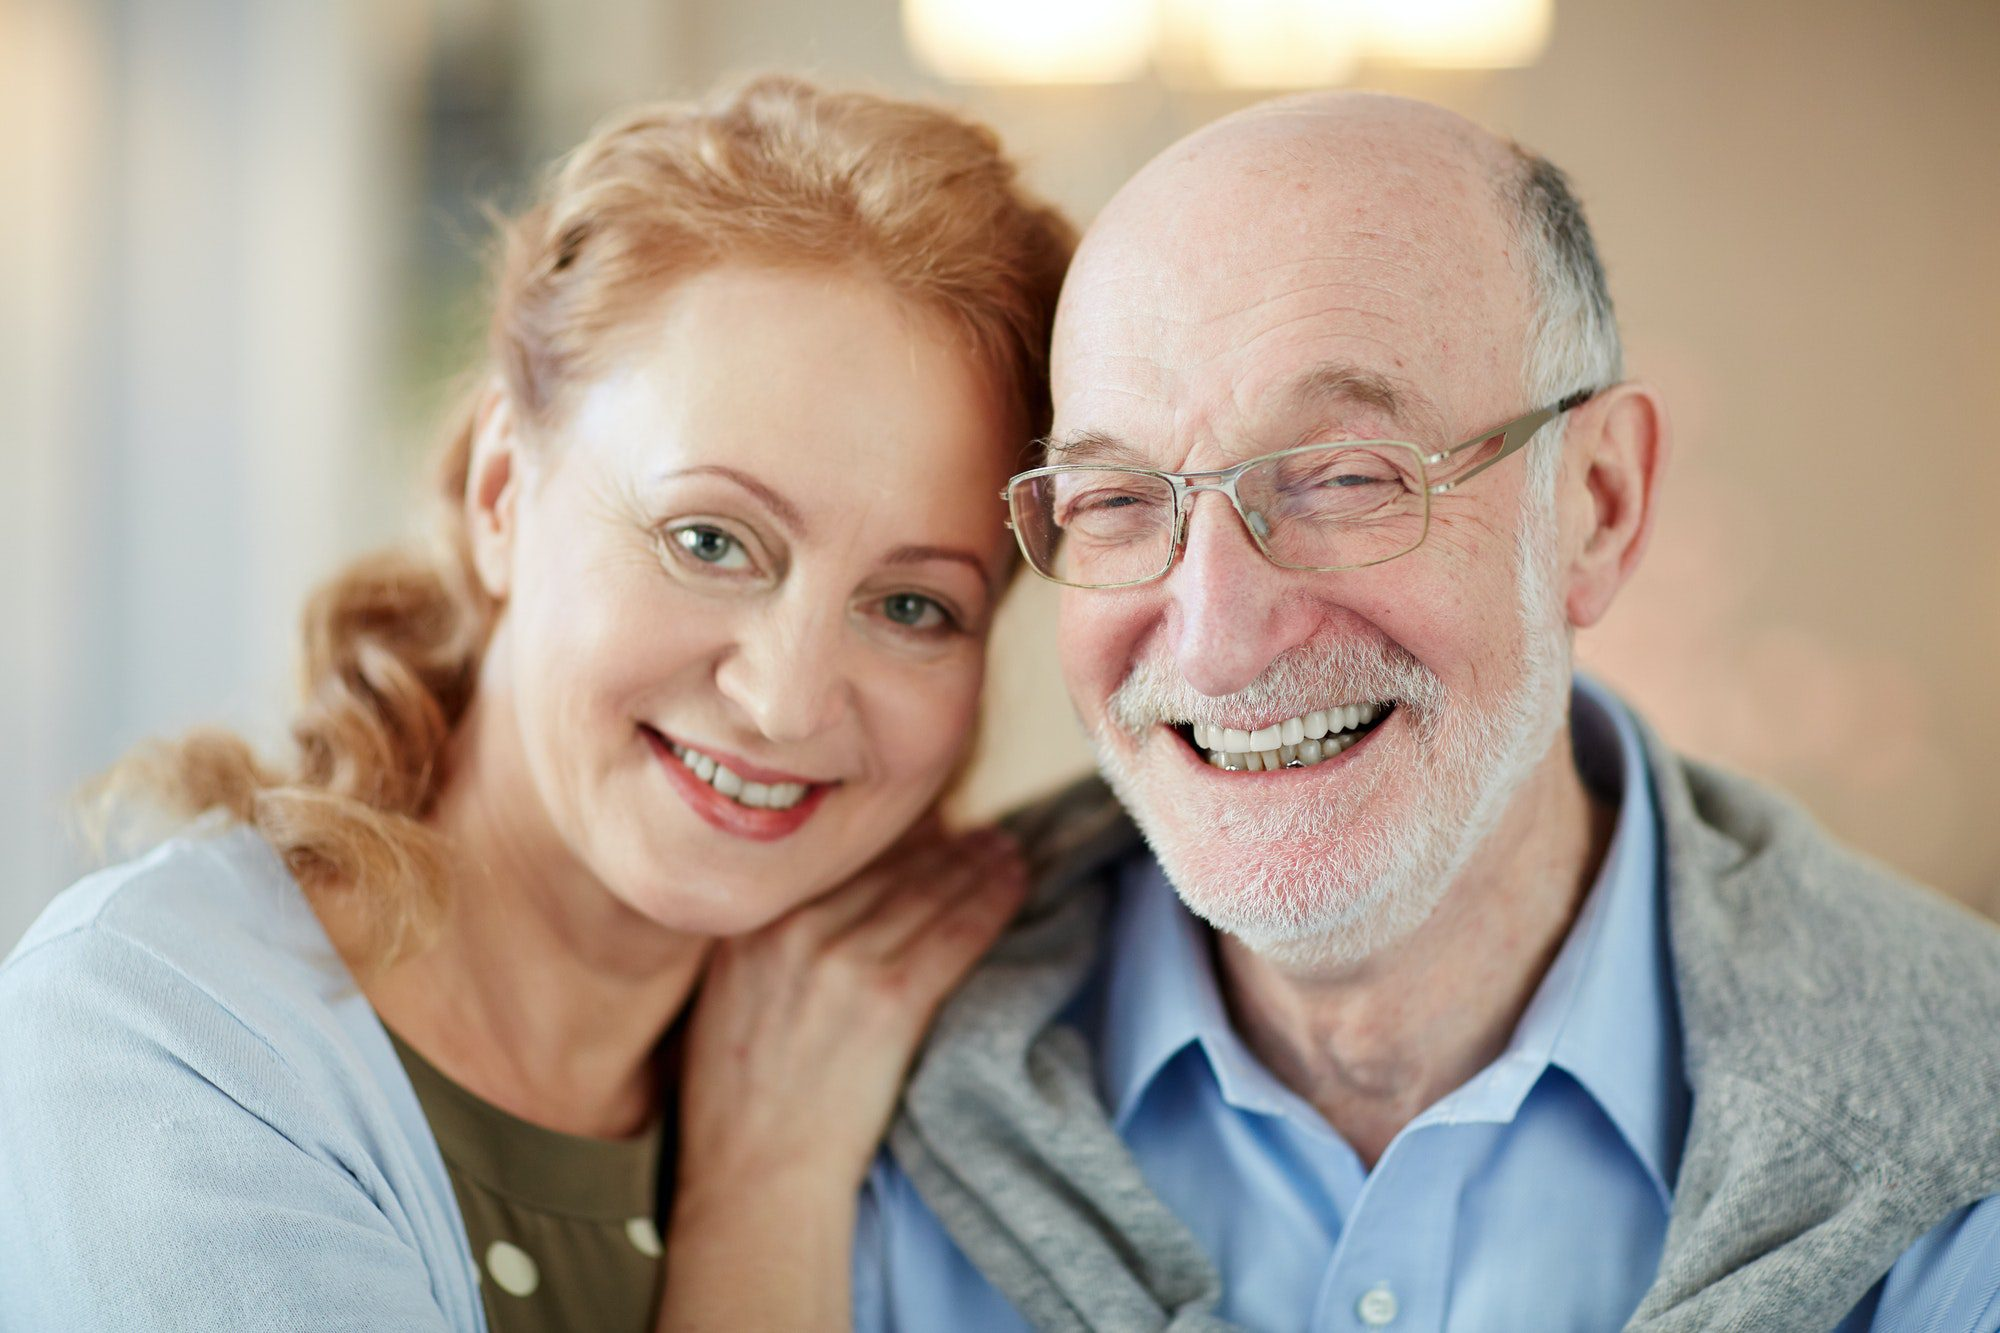 Married seniors looking for Medicare options in the state of Kansas